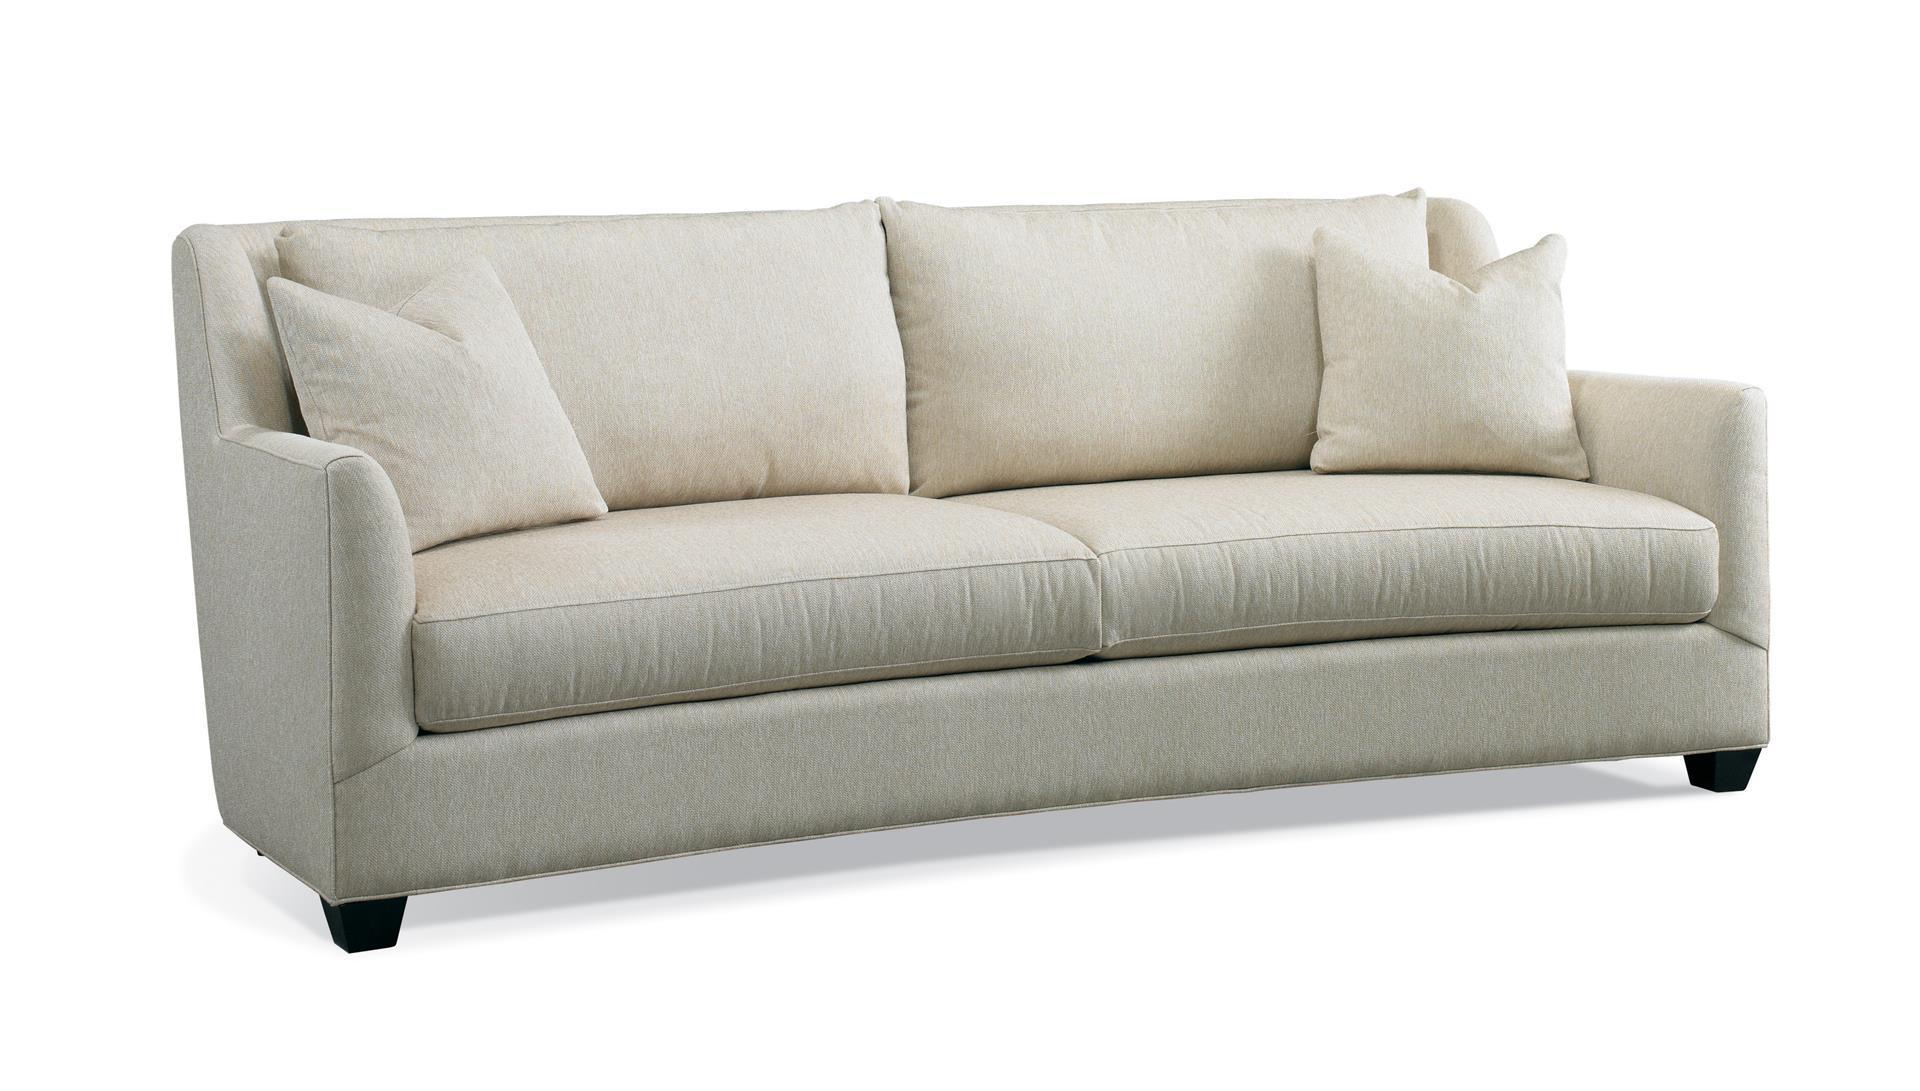 Precedent Callie Sofa From Dutchcrafters Throughout Callie Sofa Chairs (Image 19 of 25)